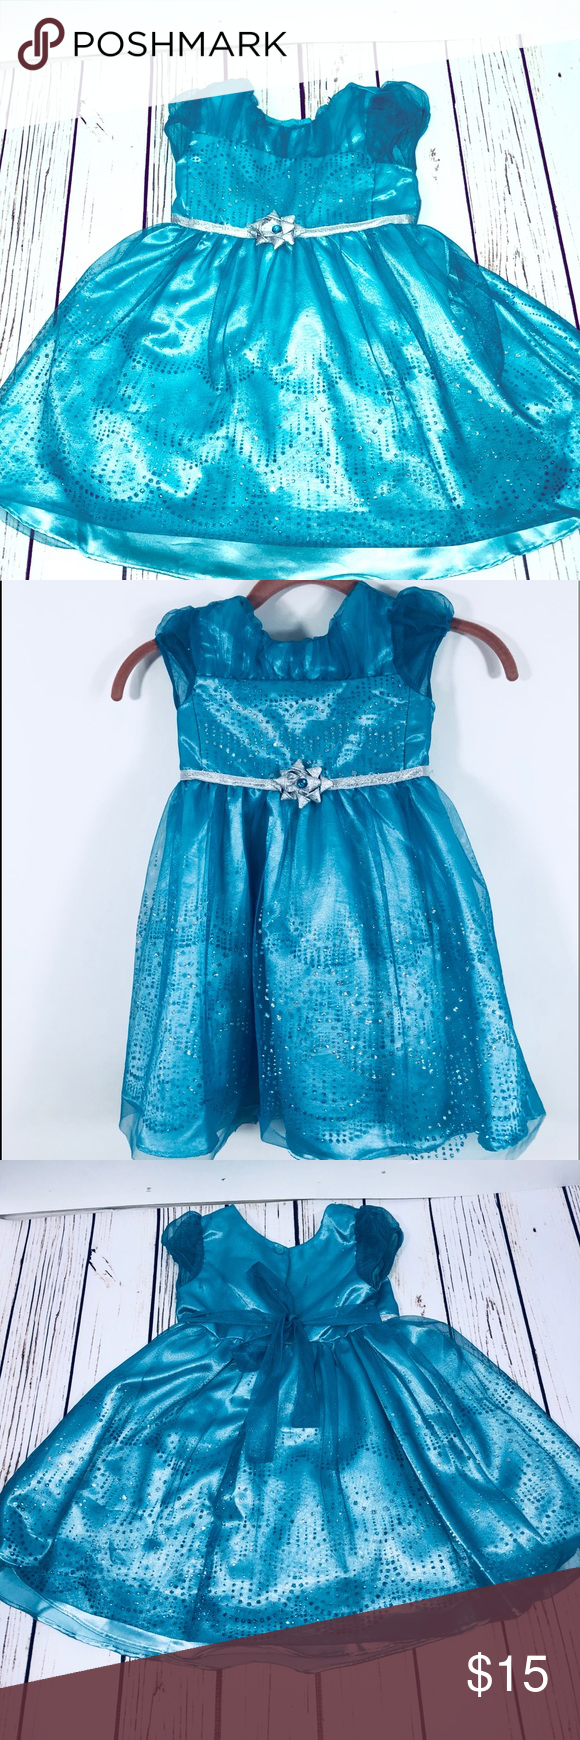 Jon S Michelle Girls Sequin Holiday Party Dress Beautiful Blue Green Party Or Holiday Dress Size 4t Silver And Blue Sequins An Fashion Clothes Design Dresses [ 1740 x 580 Pixel ]